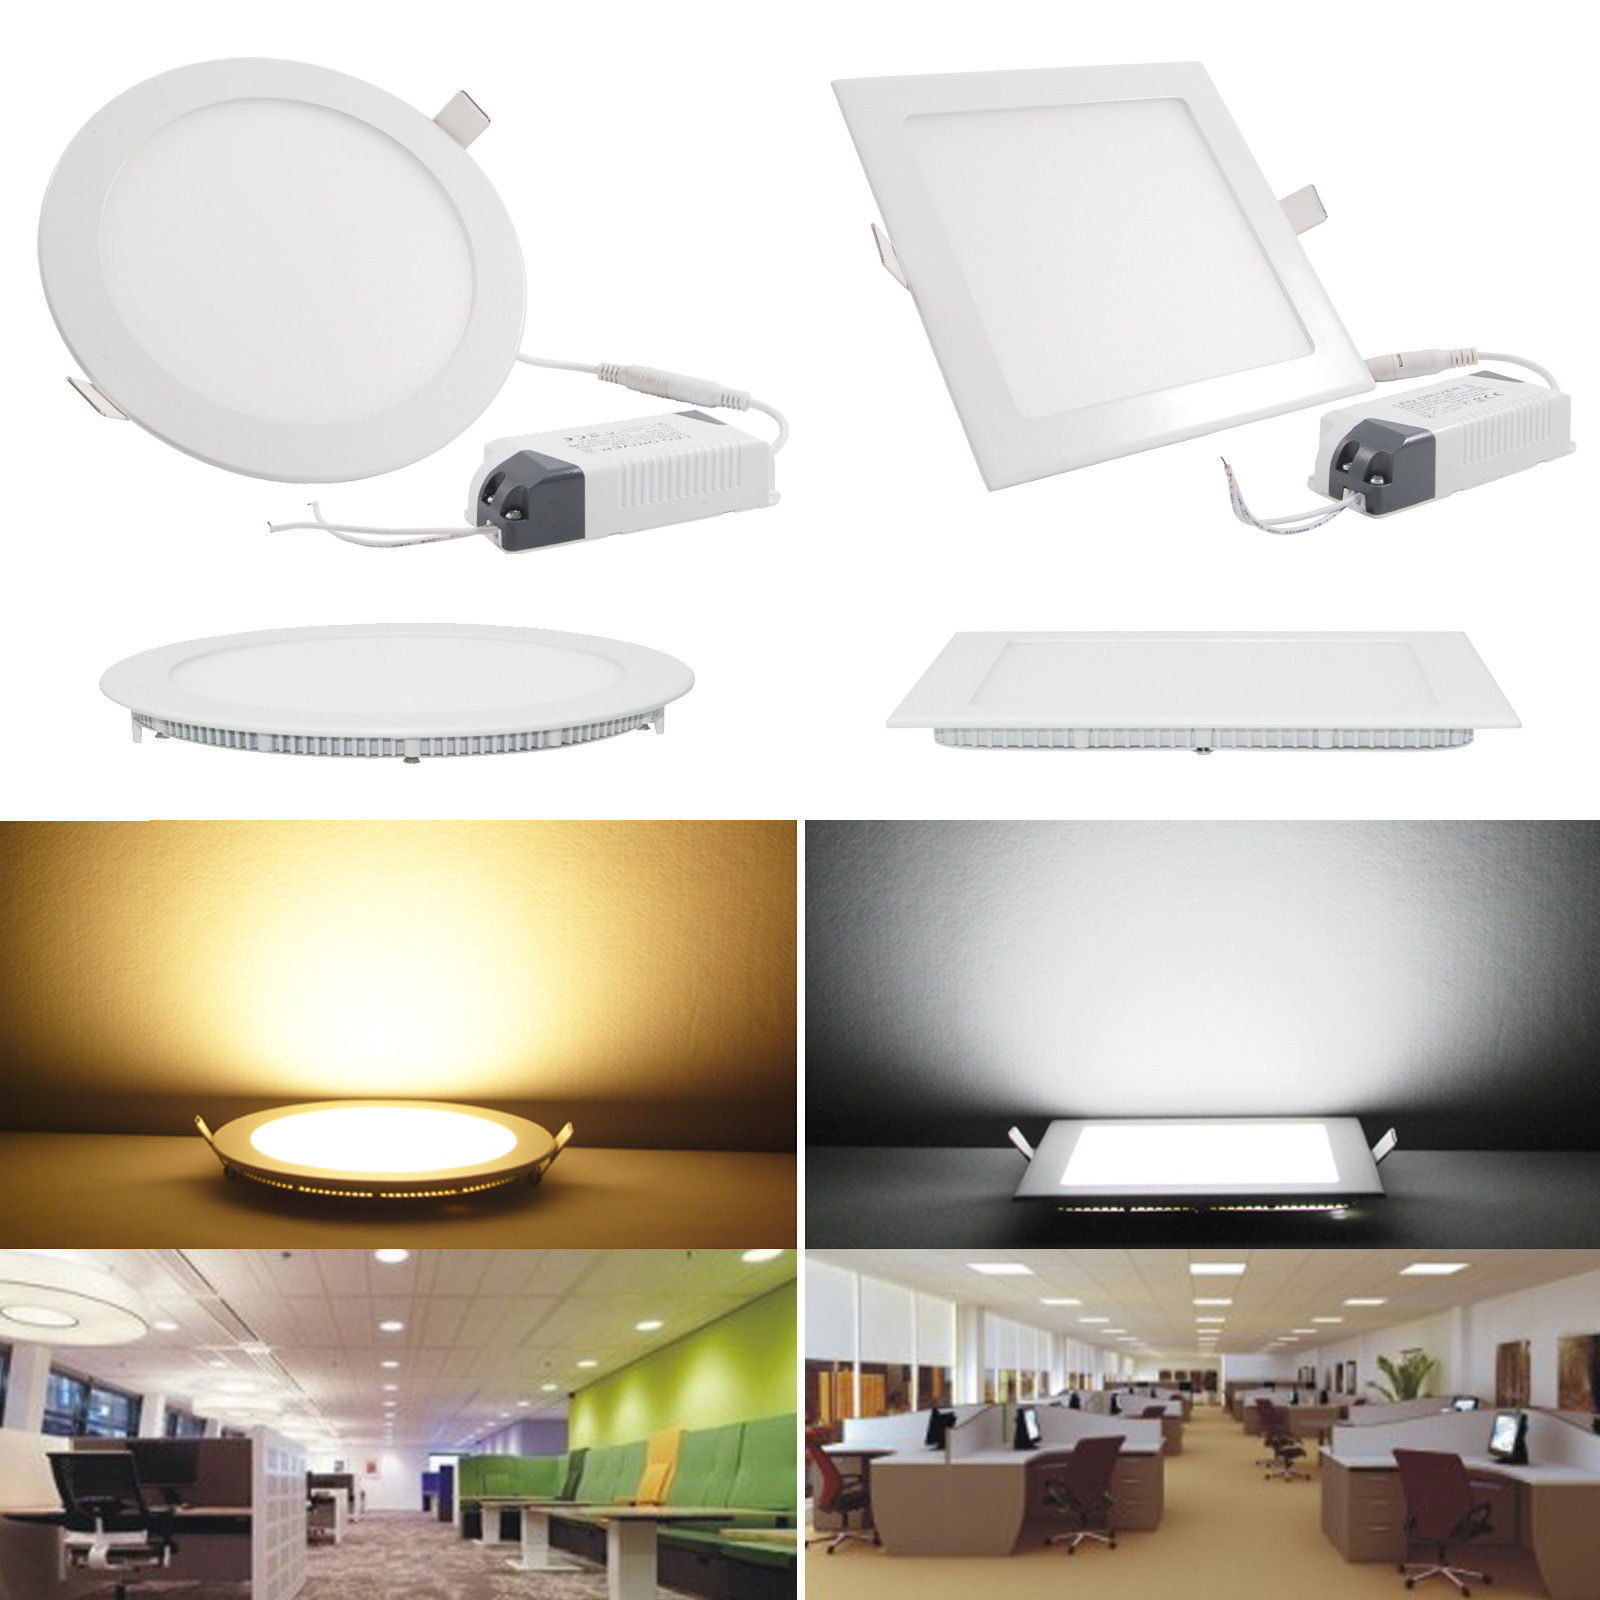 Flat Kitchen Ceiling Lights: 6W 12W 18W 24W LED Recessed Ceiling Flat Panel Down Light